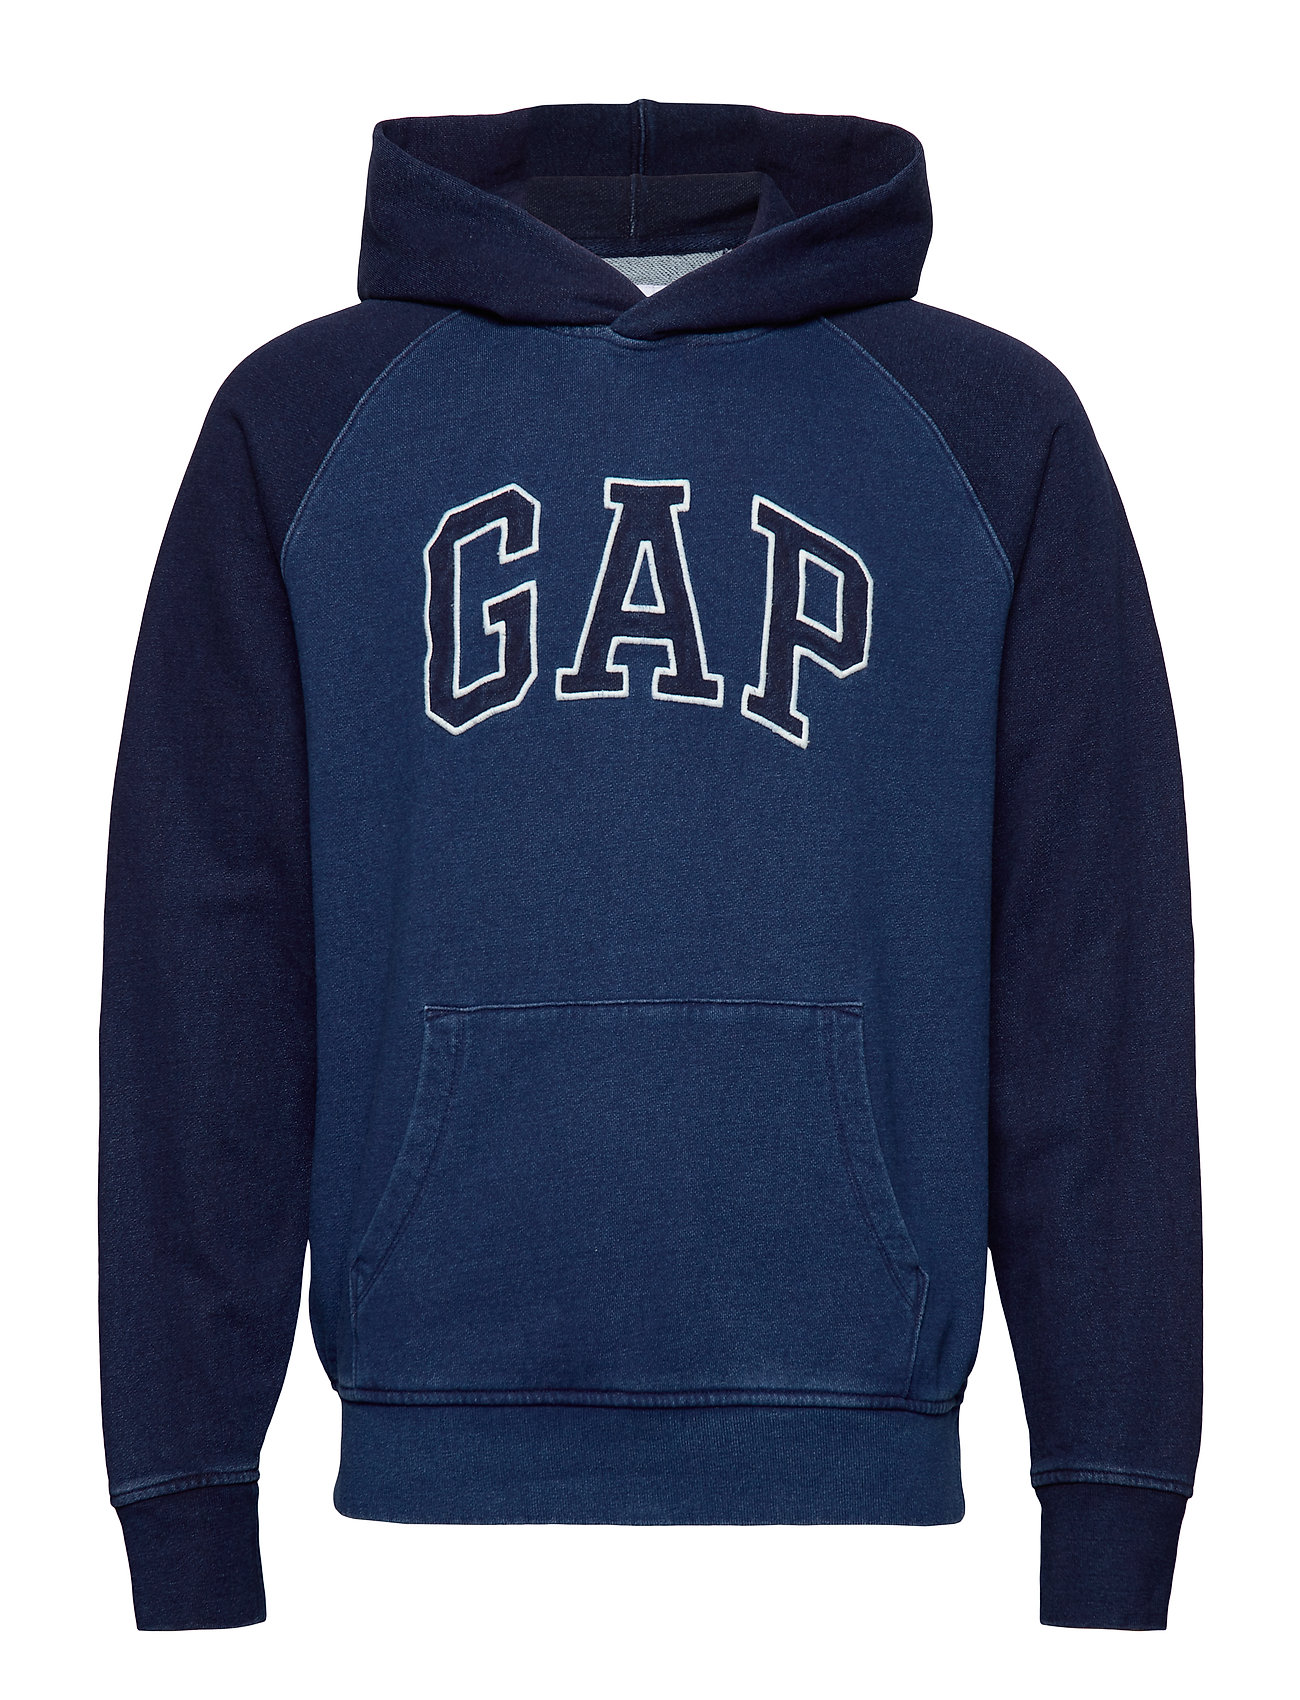 GAP LOGO CB INDIGO PO HD - MEDIUM INDIGO 1